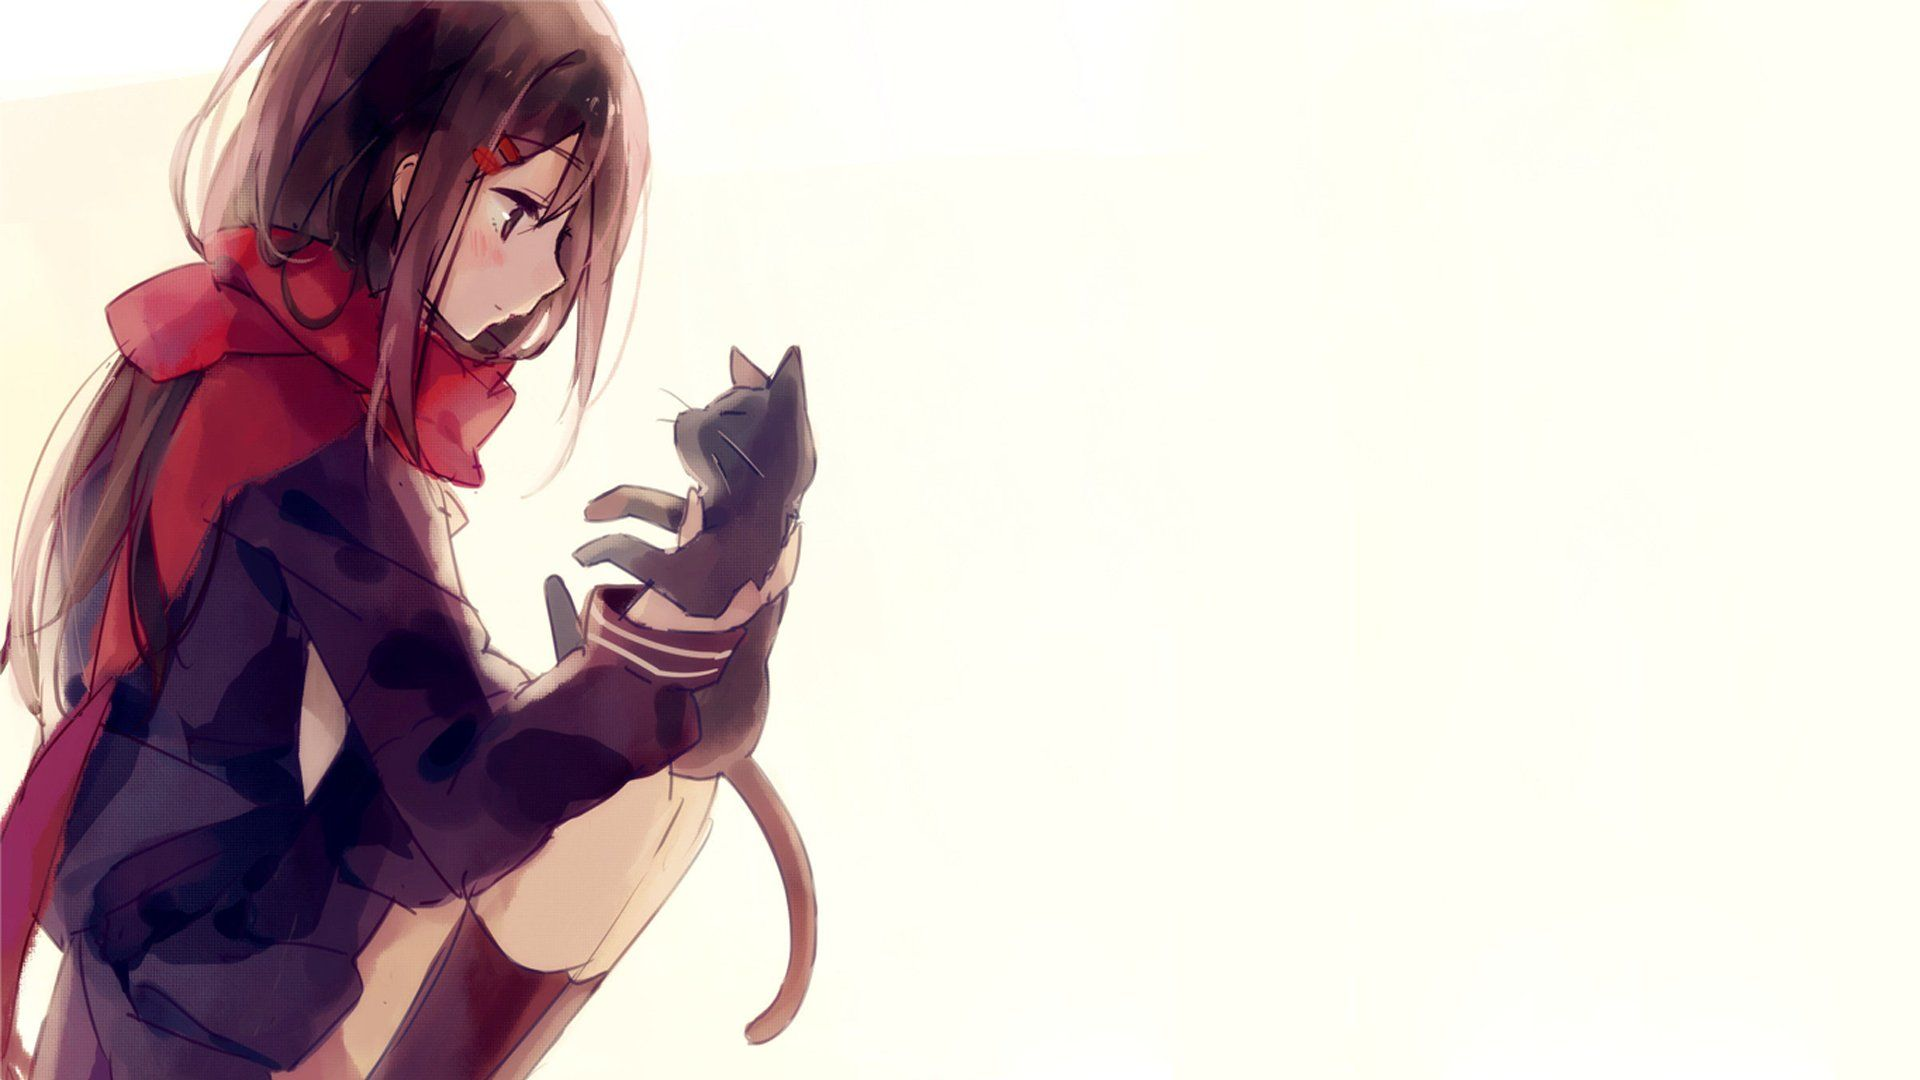 Anime Girl Wallpaper Full Hd, Beautiful Wallpaper Full - Cute Anime Cat Girl , HD Wallpaper & Backgrounds